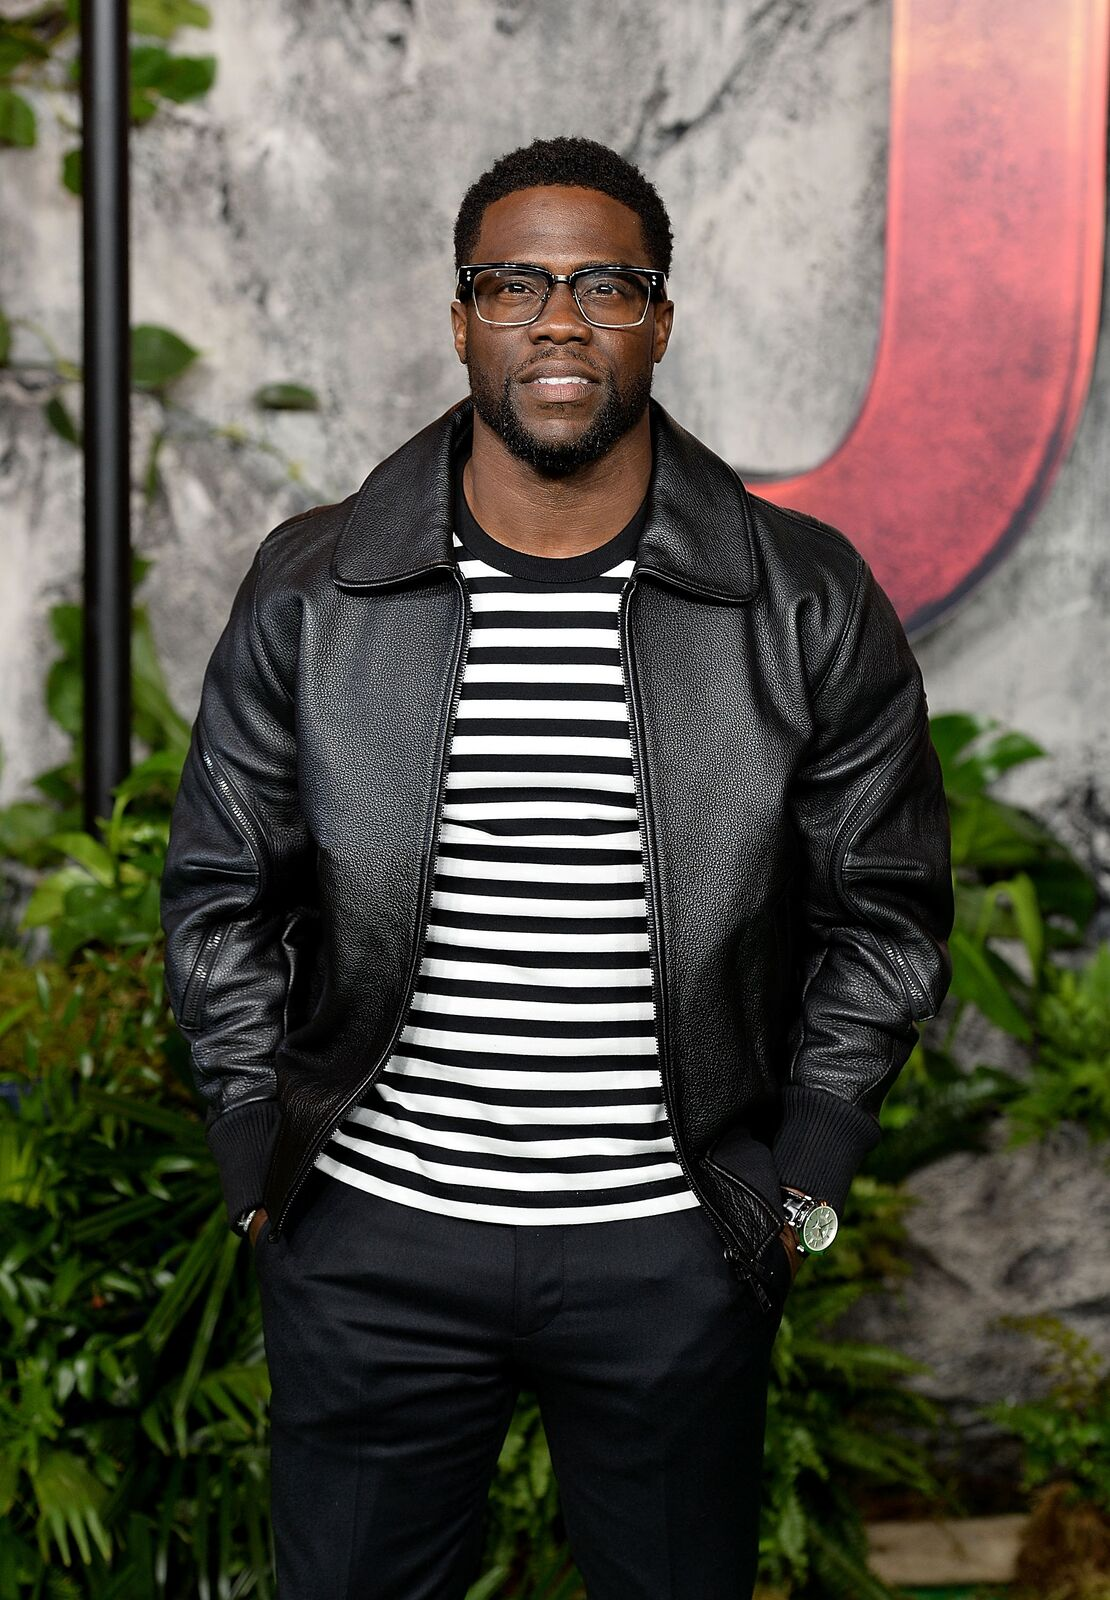 Kevin Hart attends the 'Jumanji: Welcome To The Jungle' UK premiere held at Vue West End on December 7, 2017 | Photo: Getty Images